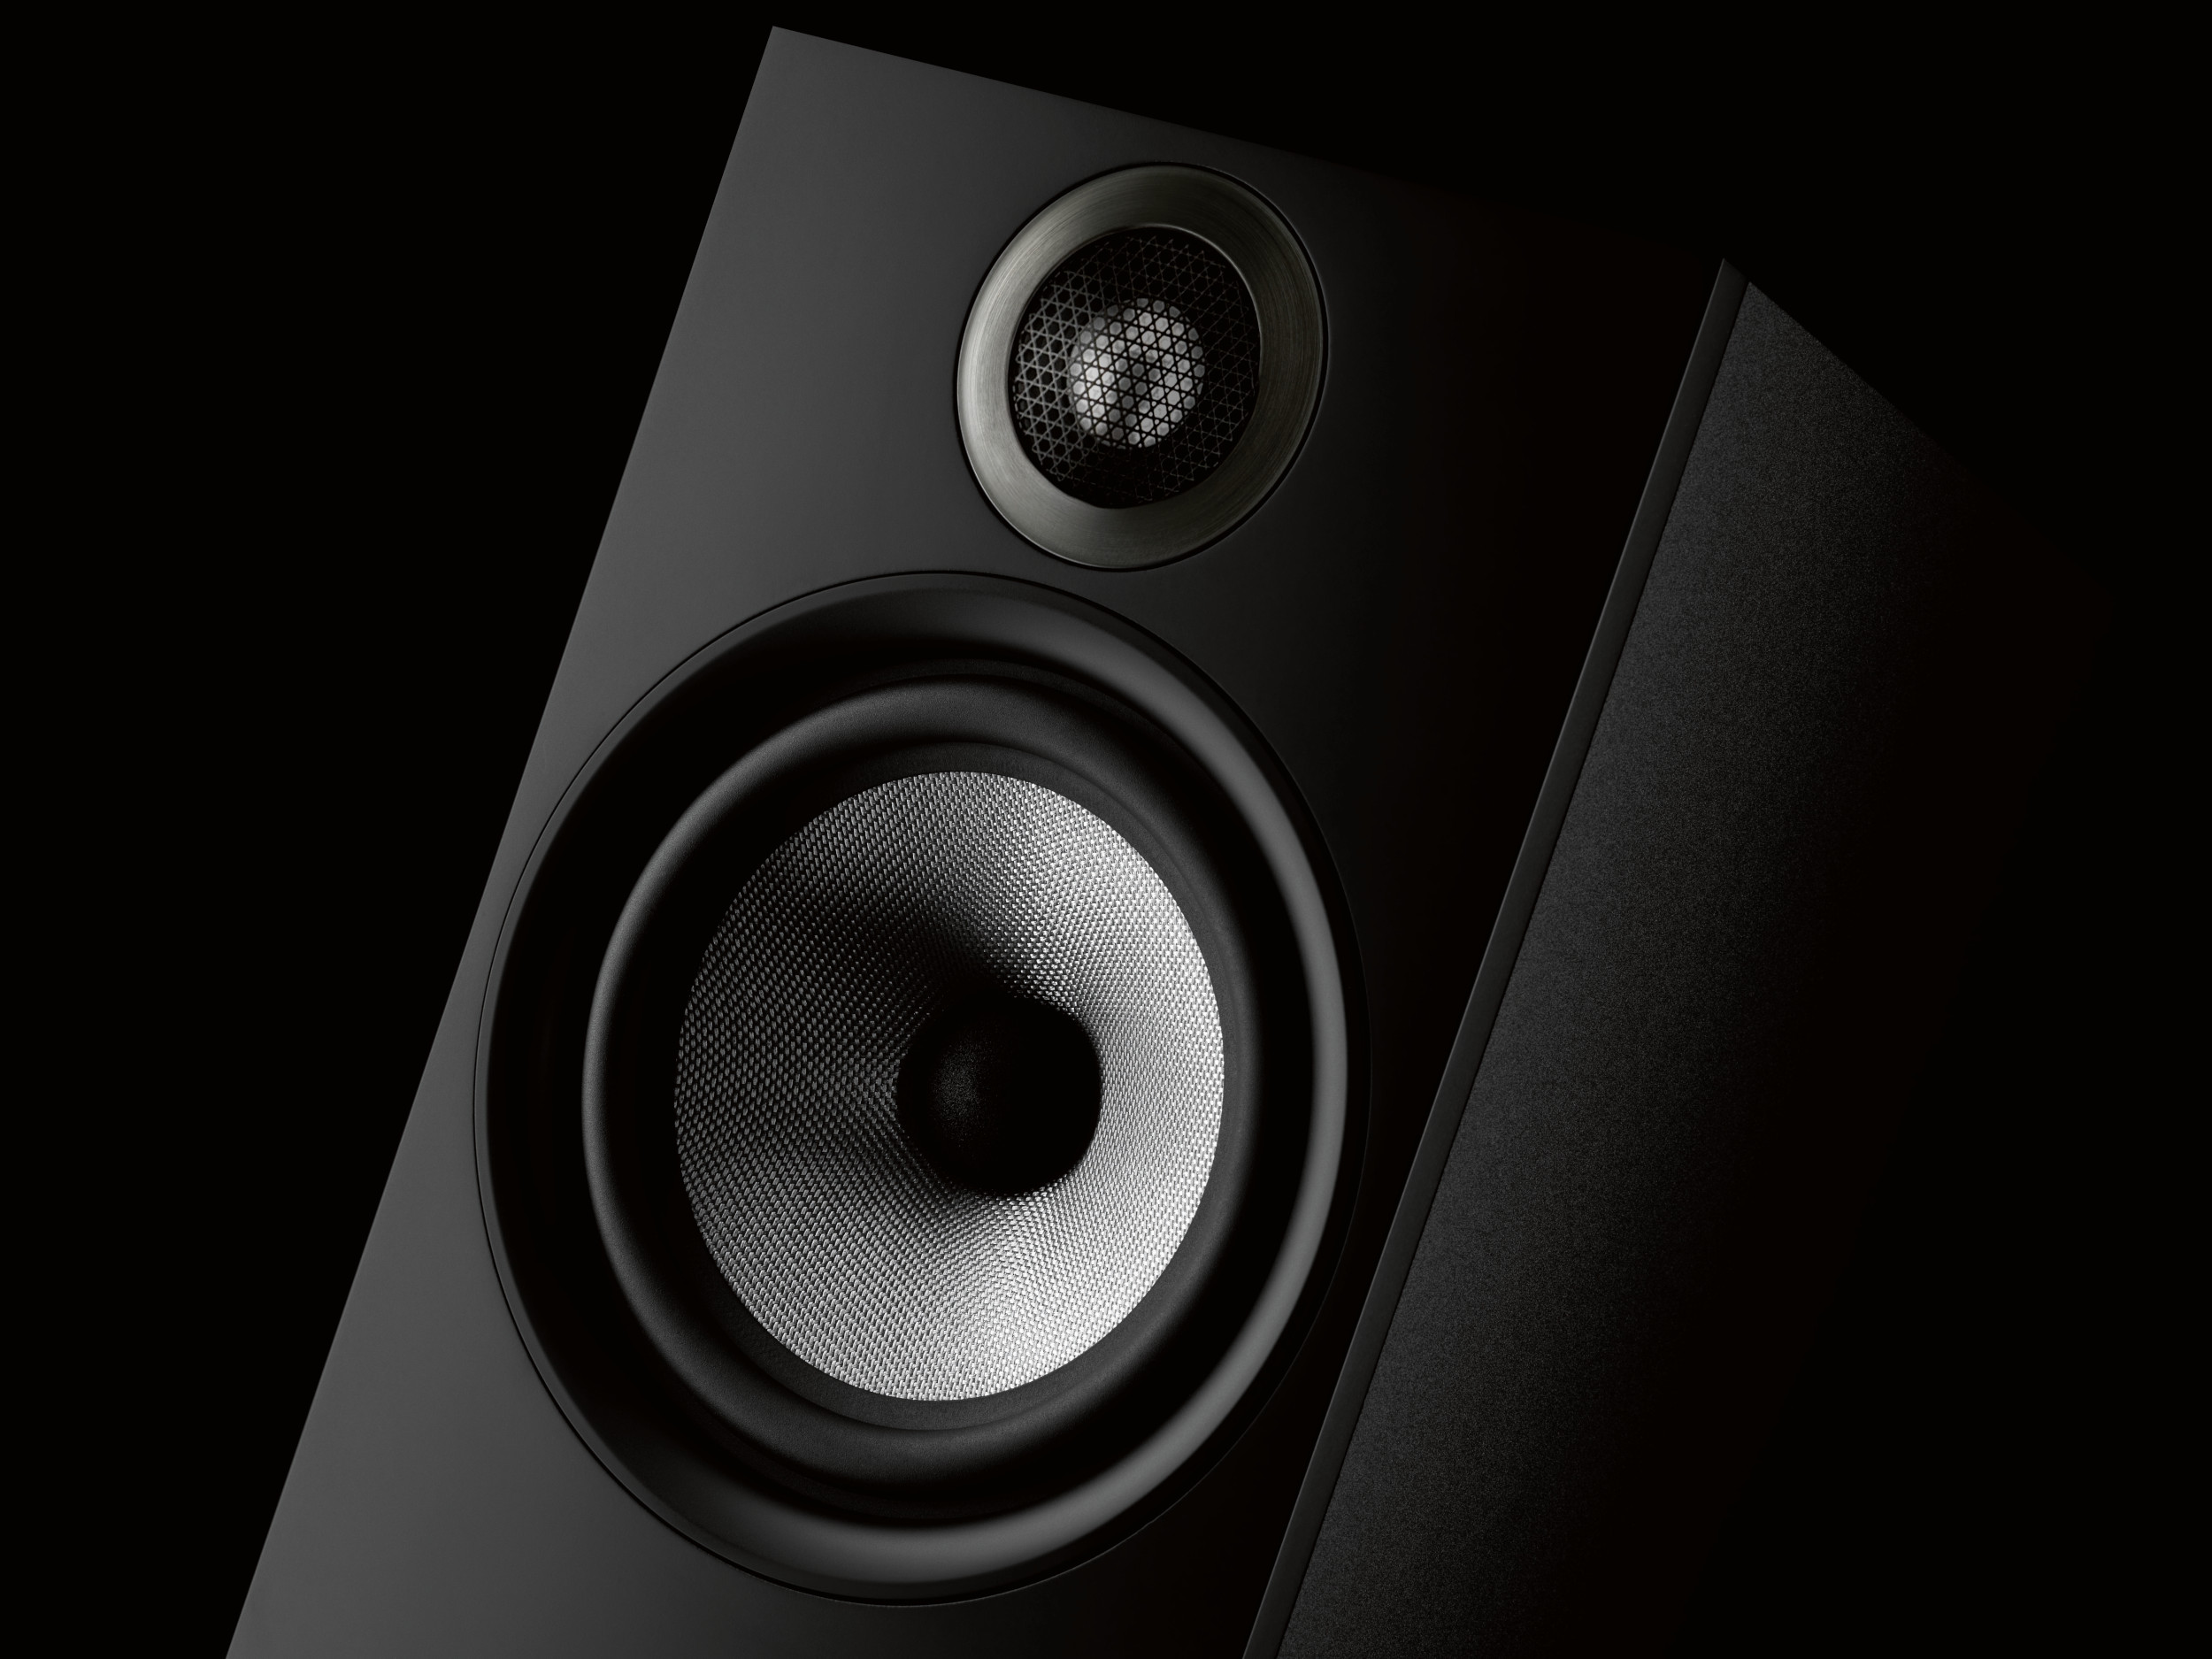 High 606 Black Black Background Beauty New Bowers and Wilkins 600 Series Speakers Set To Ignite Sound Market